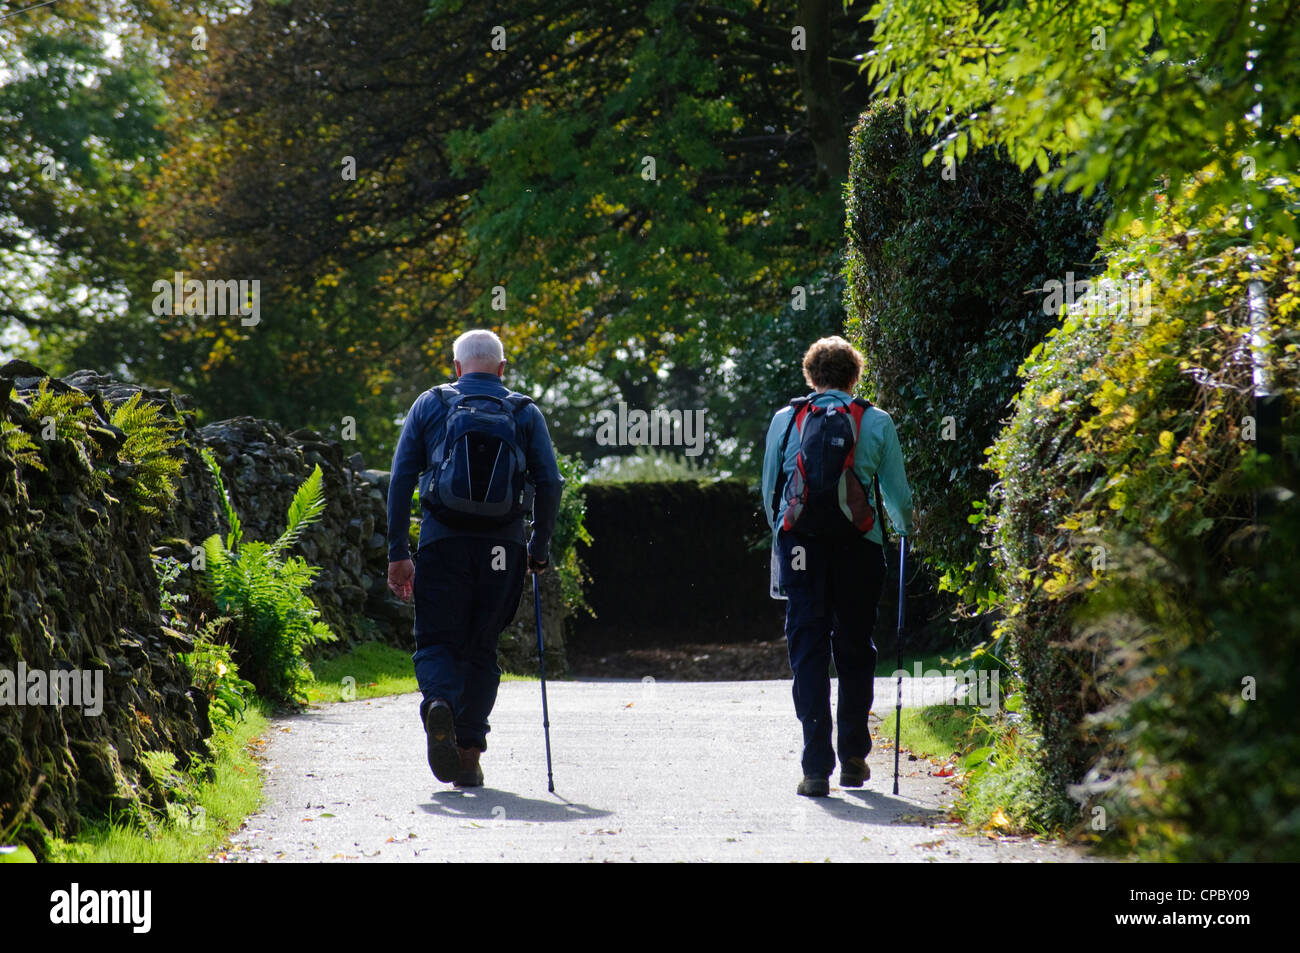 Walkers on Robin Lane, Troutbeck, Lake District - Stock Image